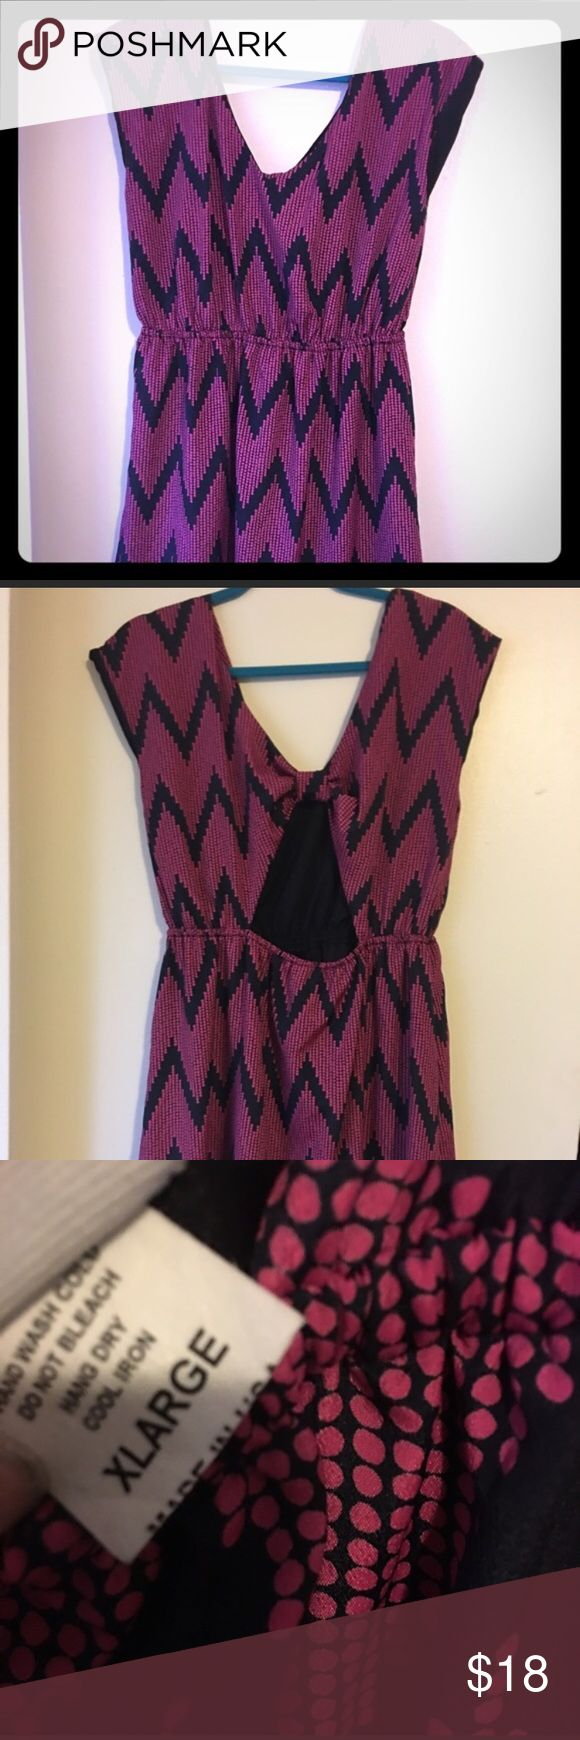 NWT- Adorable pink and navy chevron dress The chevron print on this dress is even cuter in person! This dress is brand new-never worn, with tags. It has a scoop neck, cap sleeves, and a cute cutout in the back. Best for size 14/16. Dresses Midi